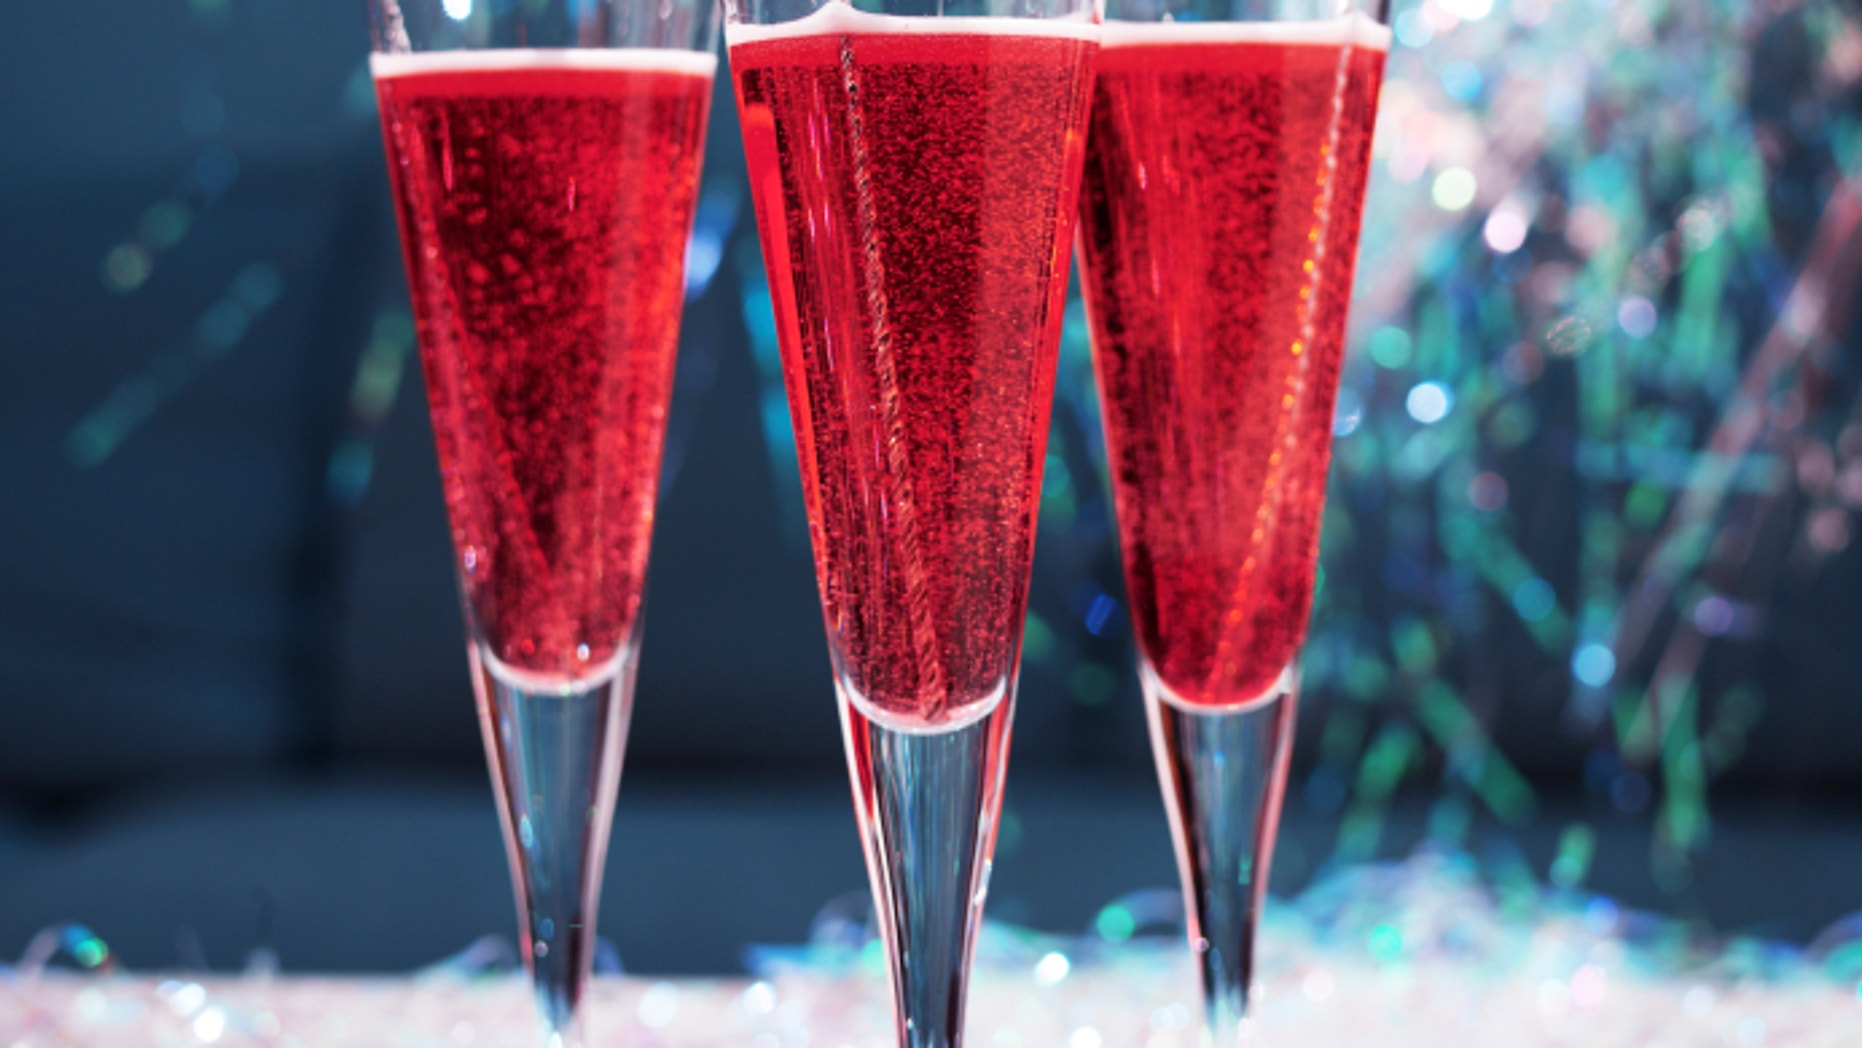 Champagne cocktails with tinsel and glitter in a festive party setting.f